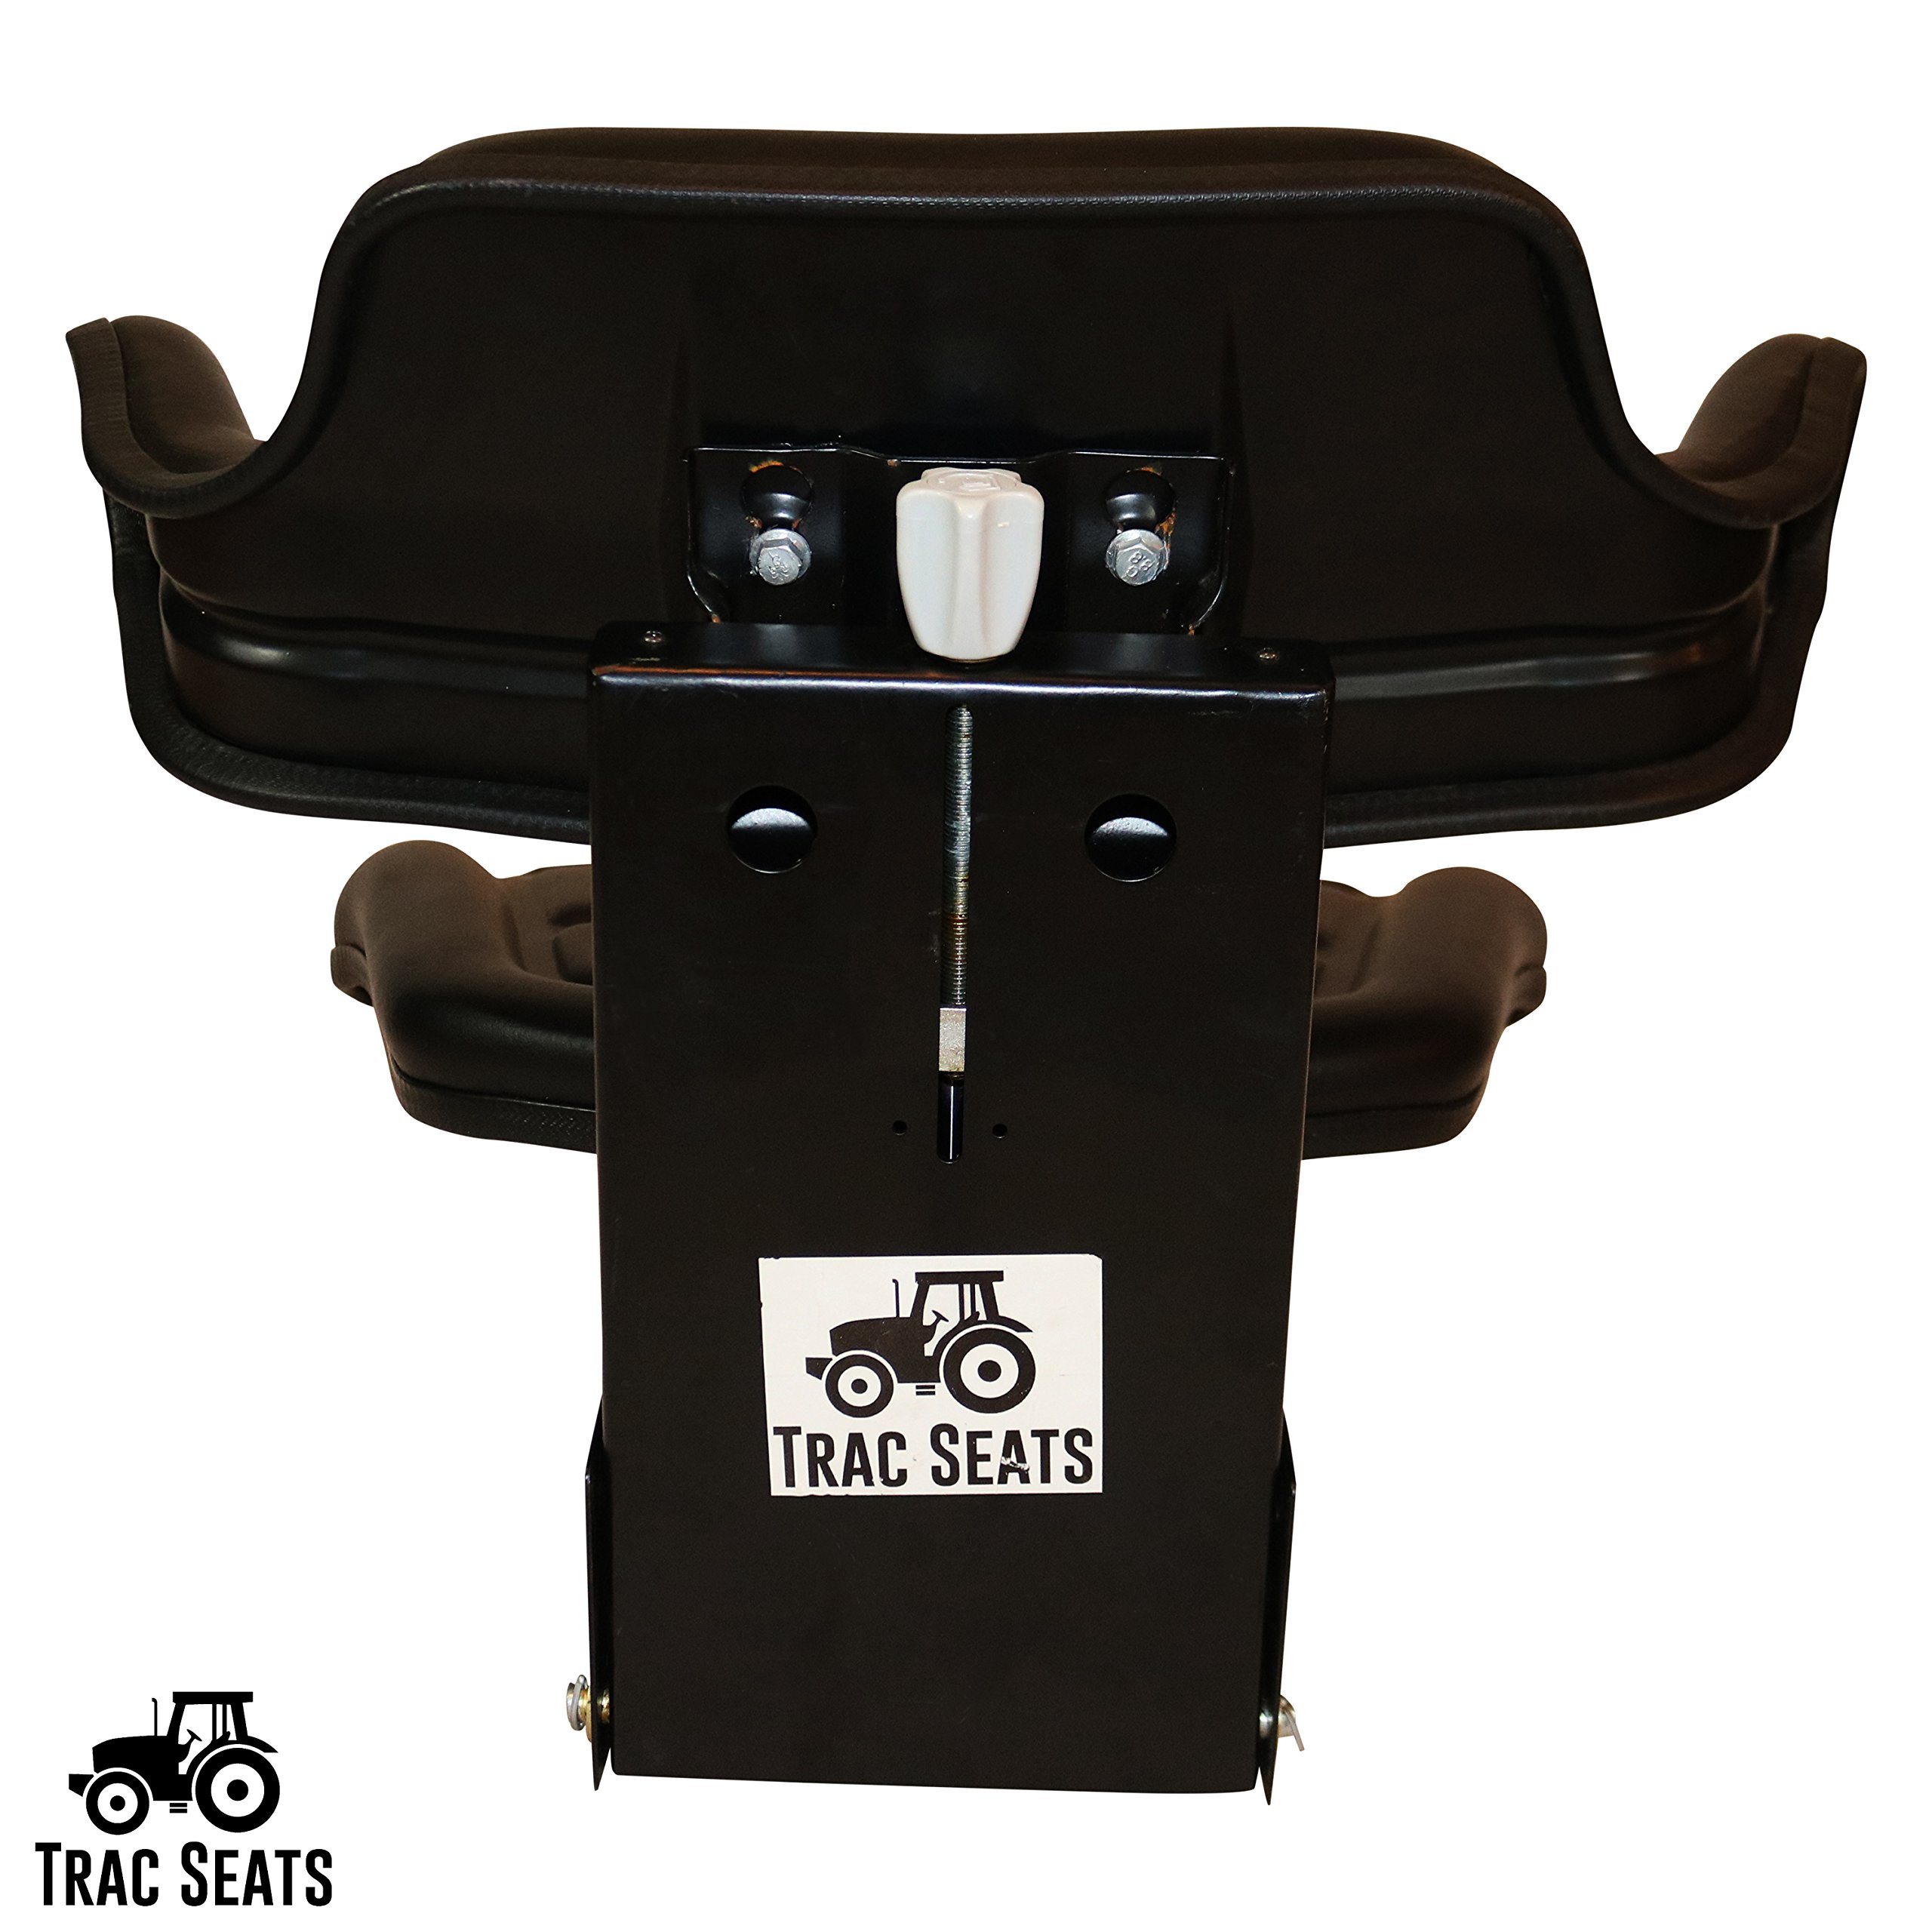 Black TRAC SEATS Brand Waffle Style Universal Tractor Suspension SEAT with TILT FITS Massey Ferguson 230 231 234 234H 234S 235 240 245 250 254 255 (Same Day Shipping - Delivers in 1-4 Business Days) by TRAC SEATS